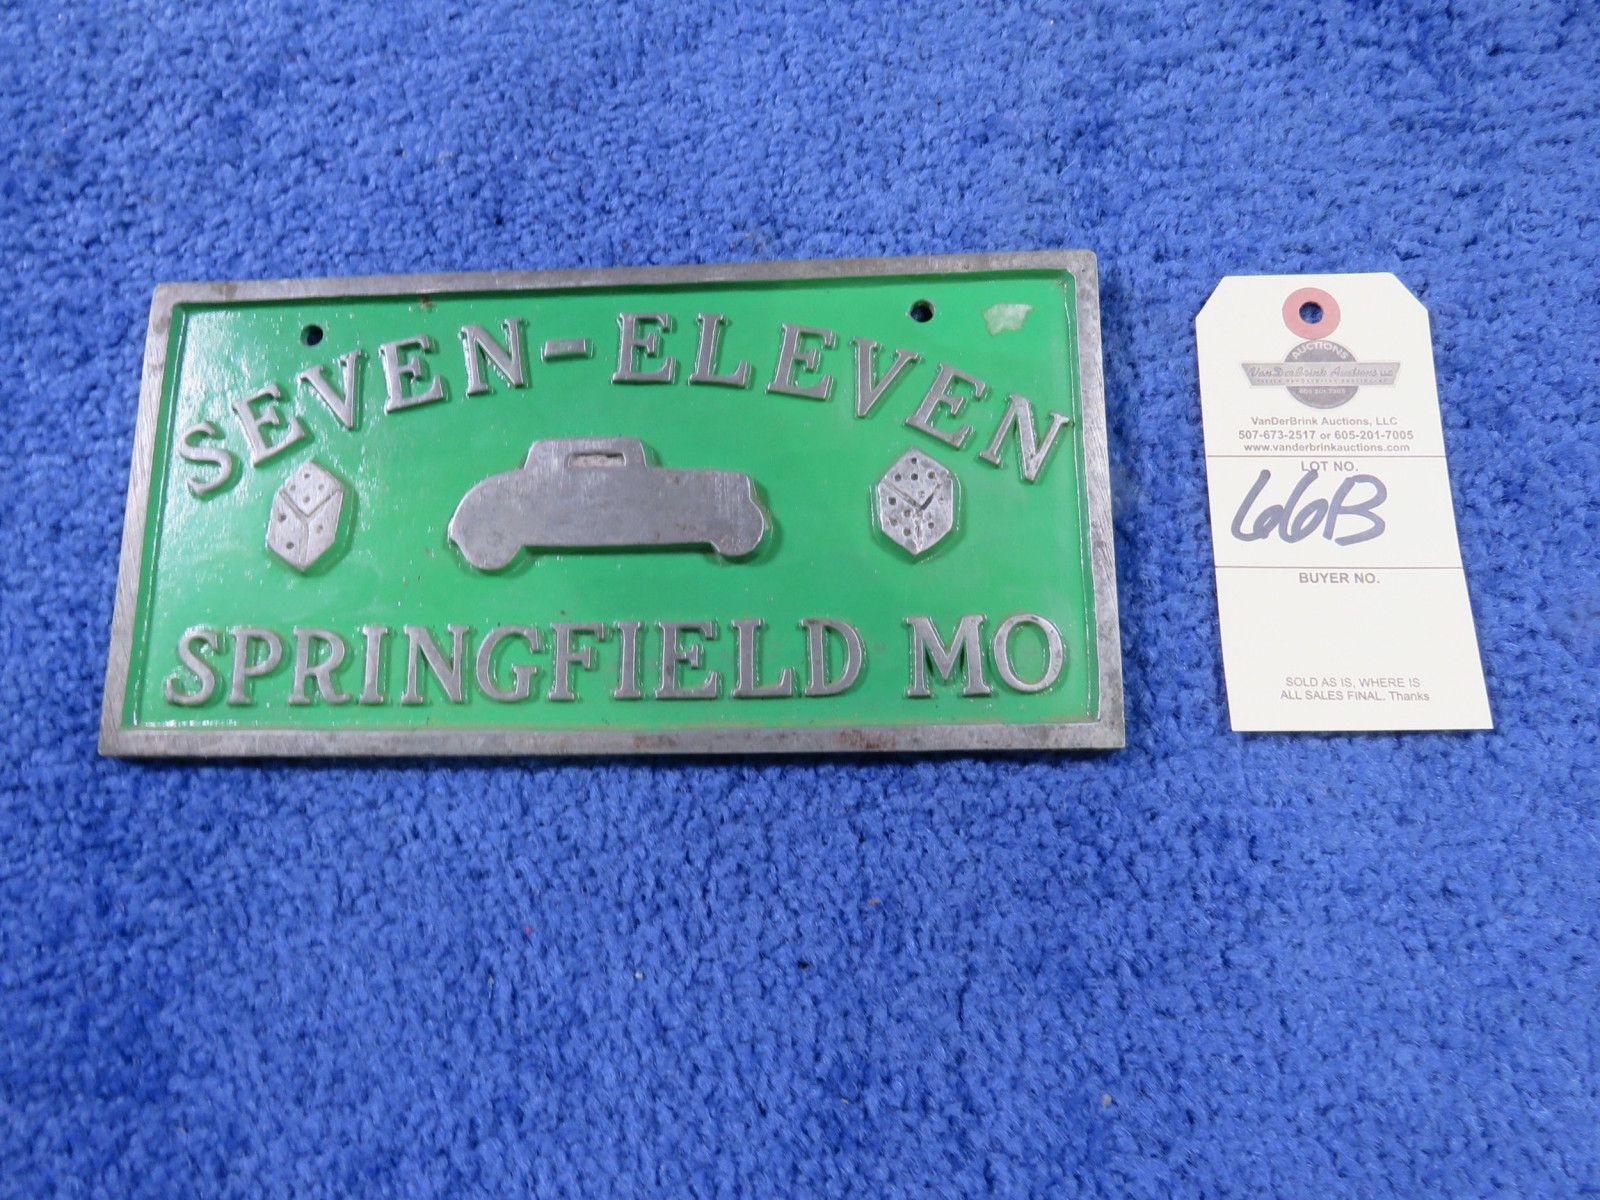 7-11 Vintage Vehicle Club Plate from Springfield, MO- Pot Metal - Image 1